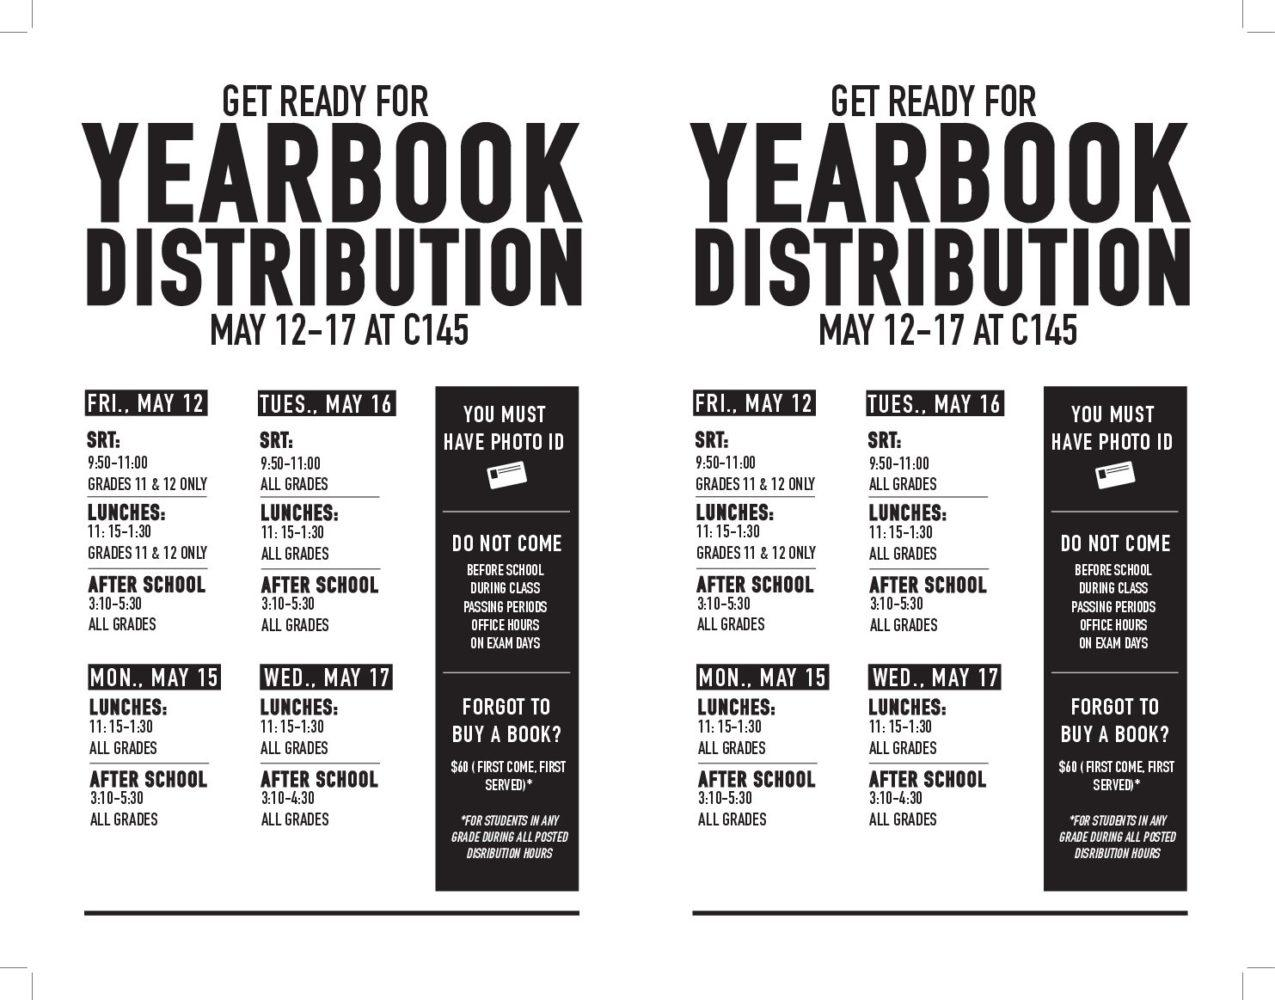 The+distribution+schedule+provided+by+Yearbook+staff.+